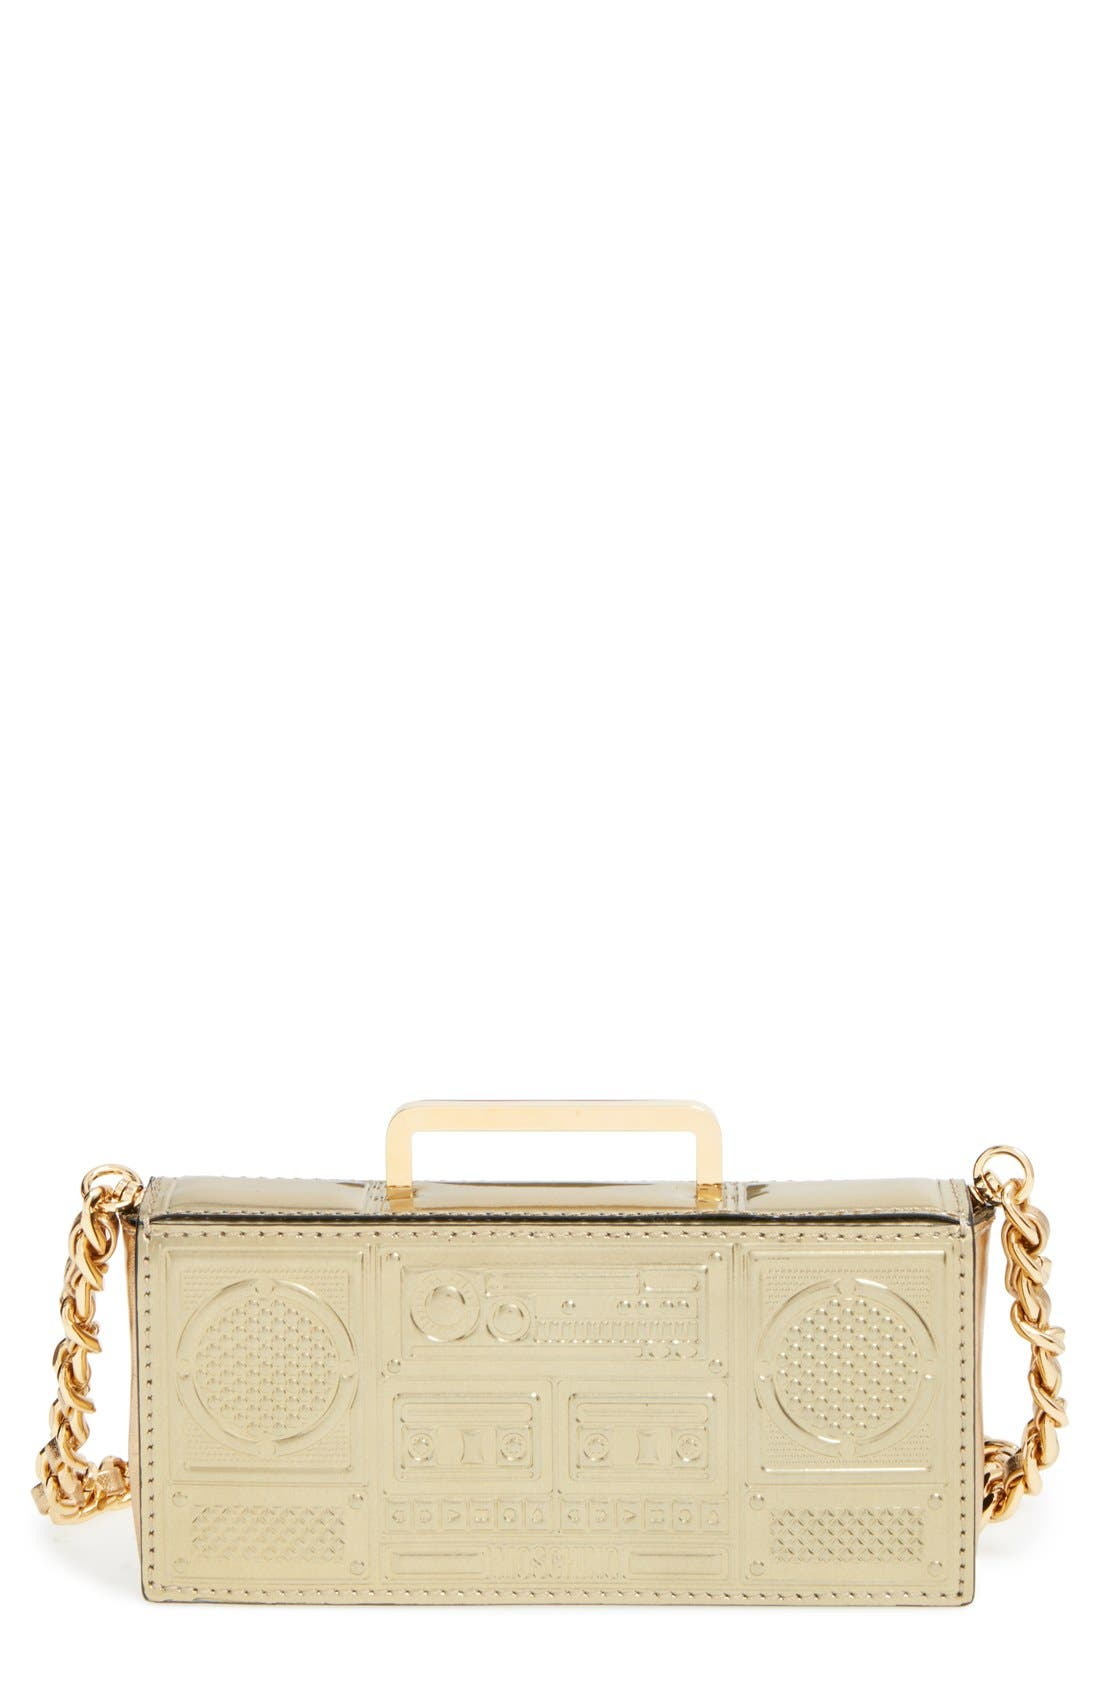 Main Image - Moschino 'Mini Boom Box' Crossbody Bag